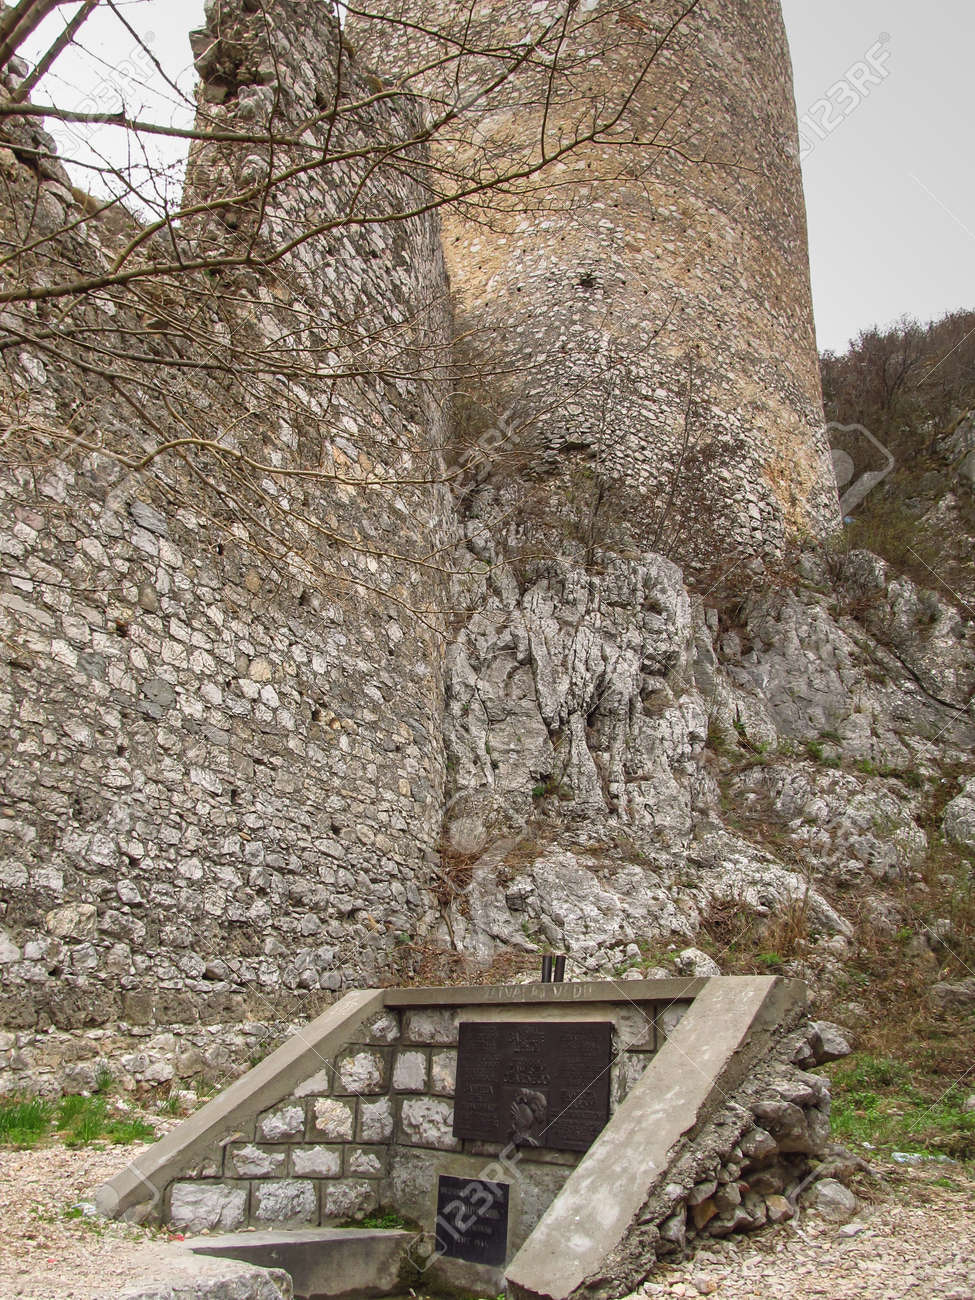 Golubac, Serbia, March 29, 2012: Ruins of castle with a commemorative plaque in the place where Zawisza Czarny, a famous Polish knight, symbol of courage and righteousness killed by the Turks in 1428 - 157894969